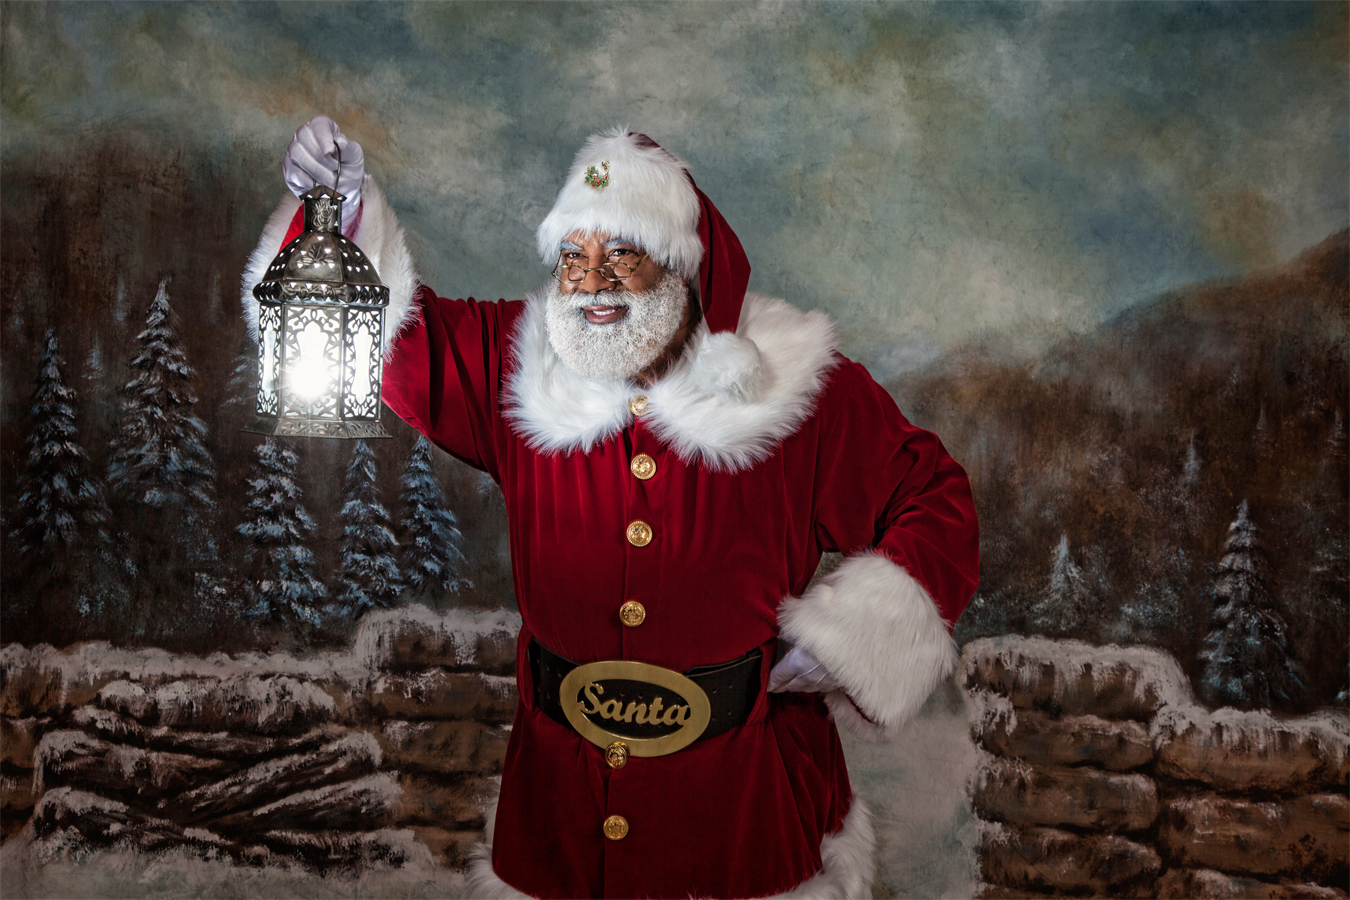 171213-pro-santa-lawrence-jefferson-featured